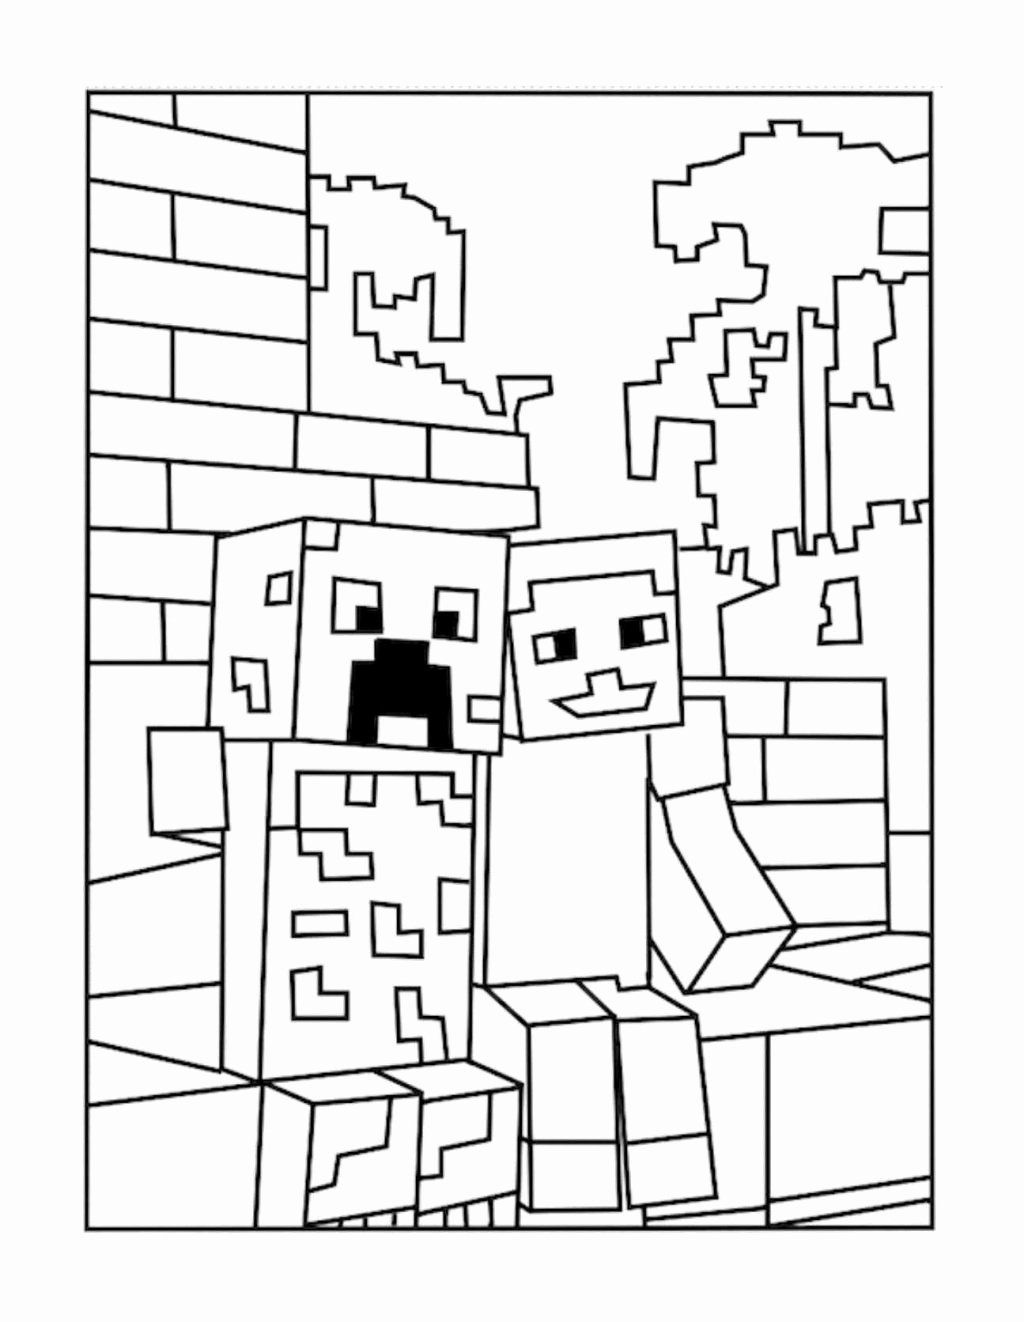 The Complete Drawing Book Probyn Fresh Coloring Book Creeper Coloring Page Sea Pages Lol In 2020 Minecraft Coloring Pages Minecraft Printables Printable Coloring Pages